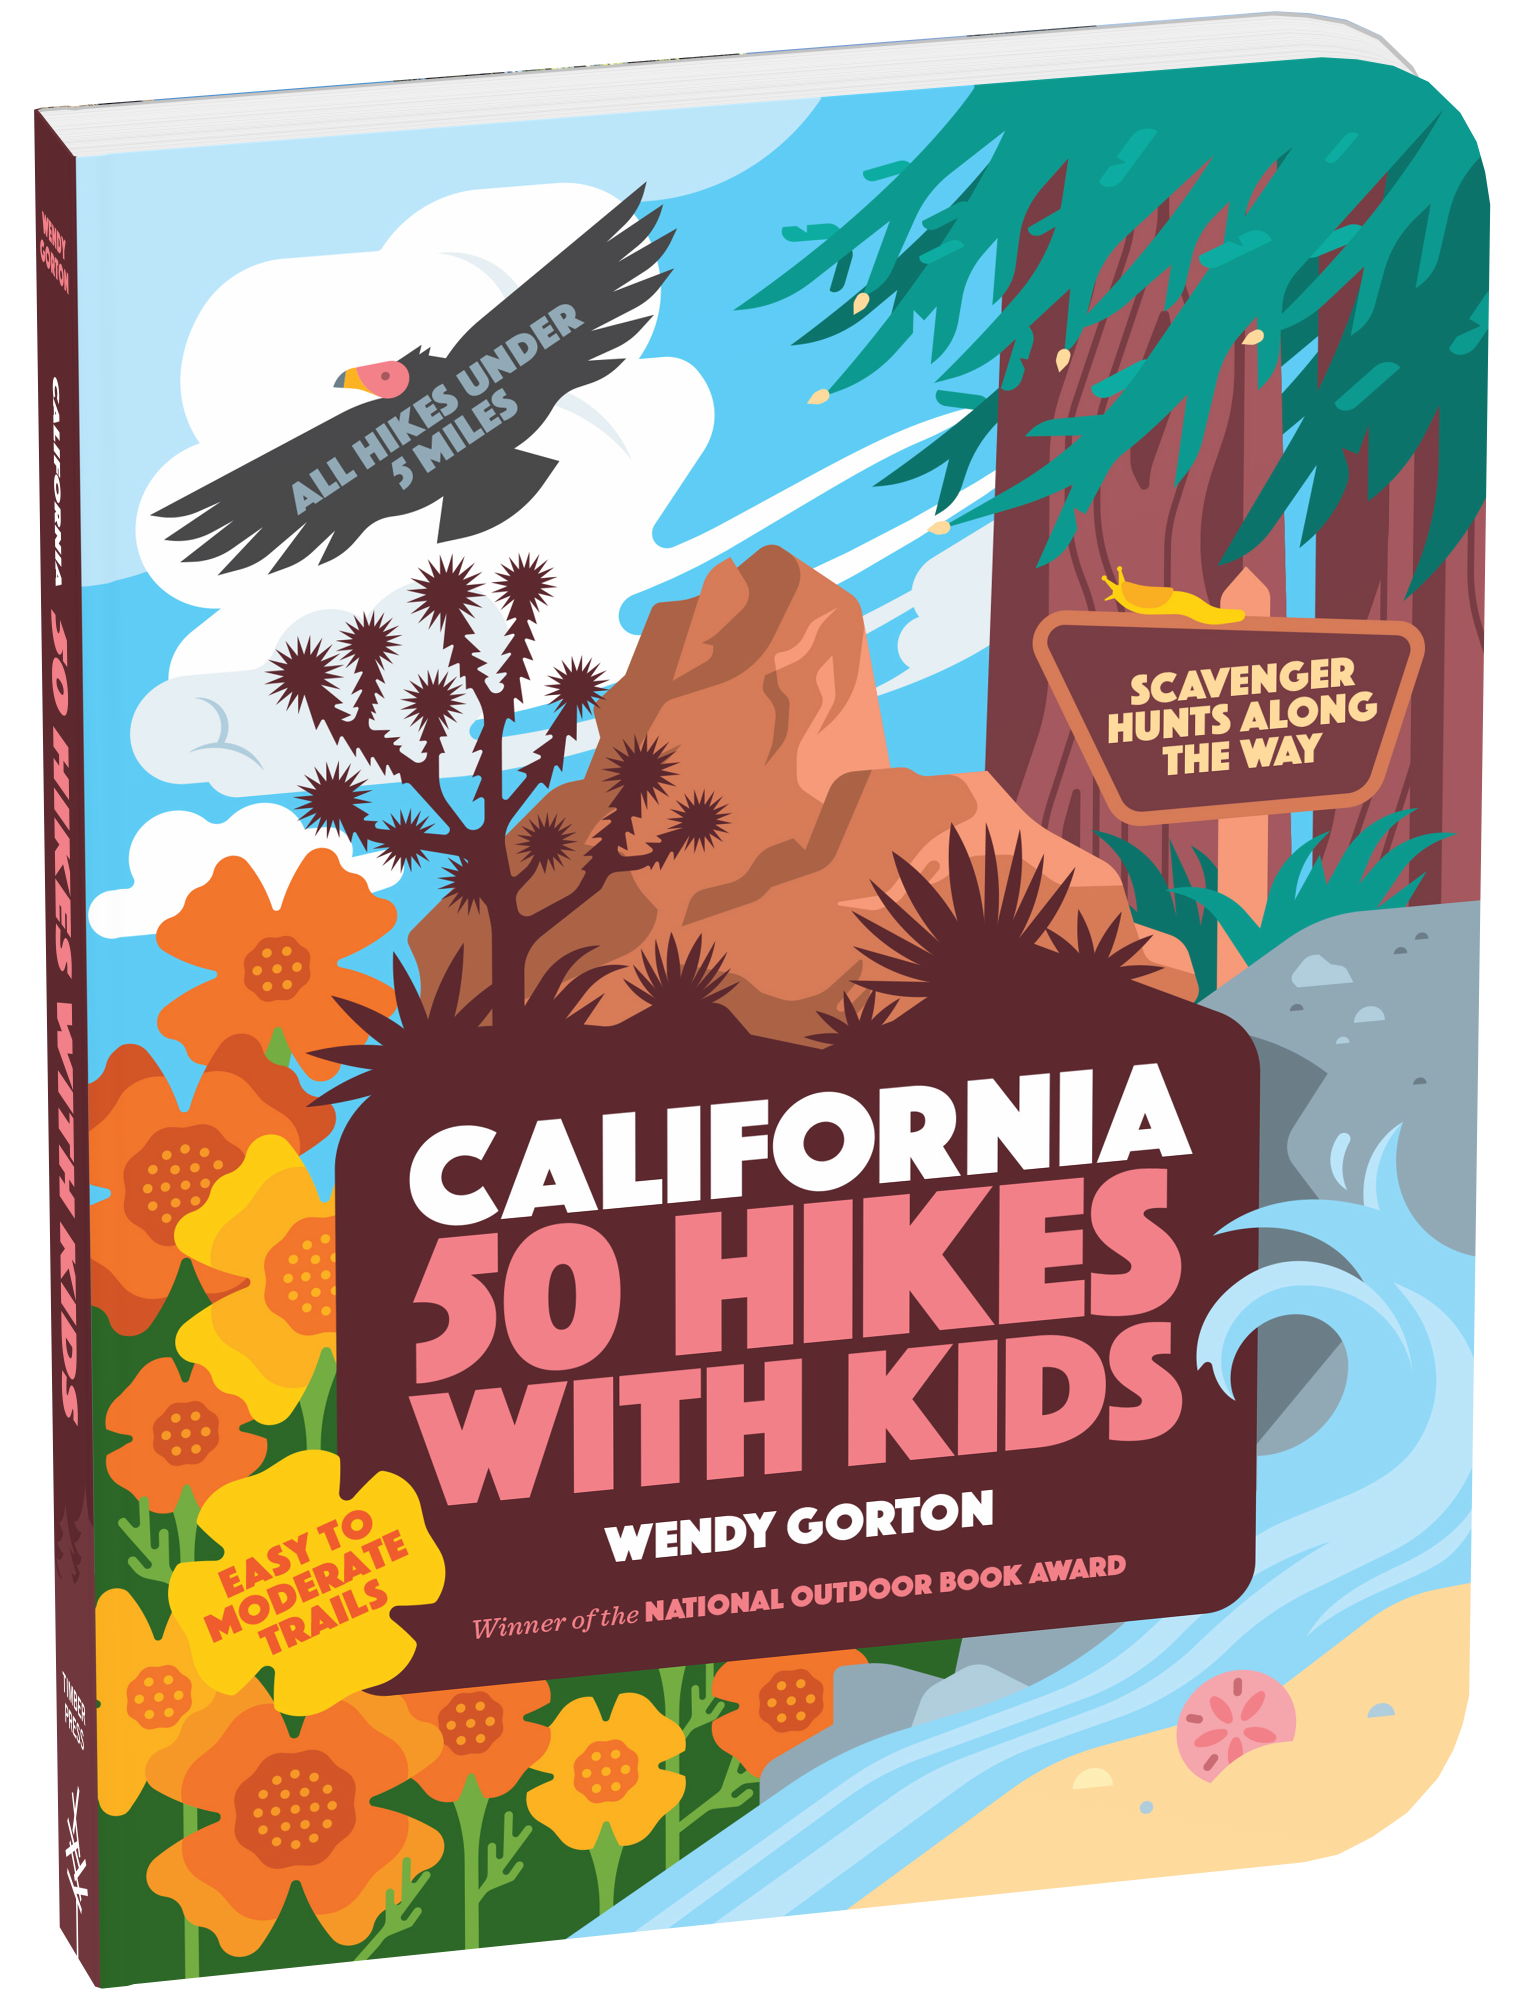 California 50 Hikes With Kids